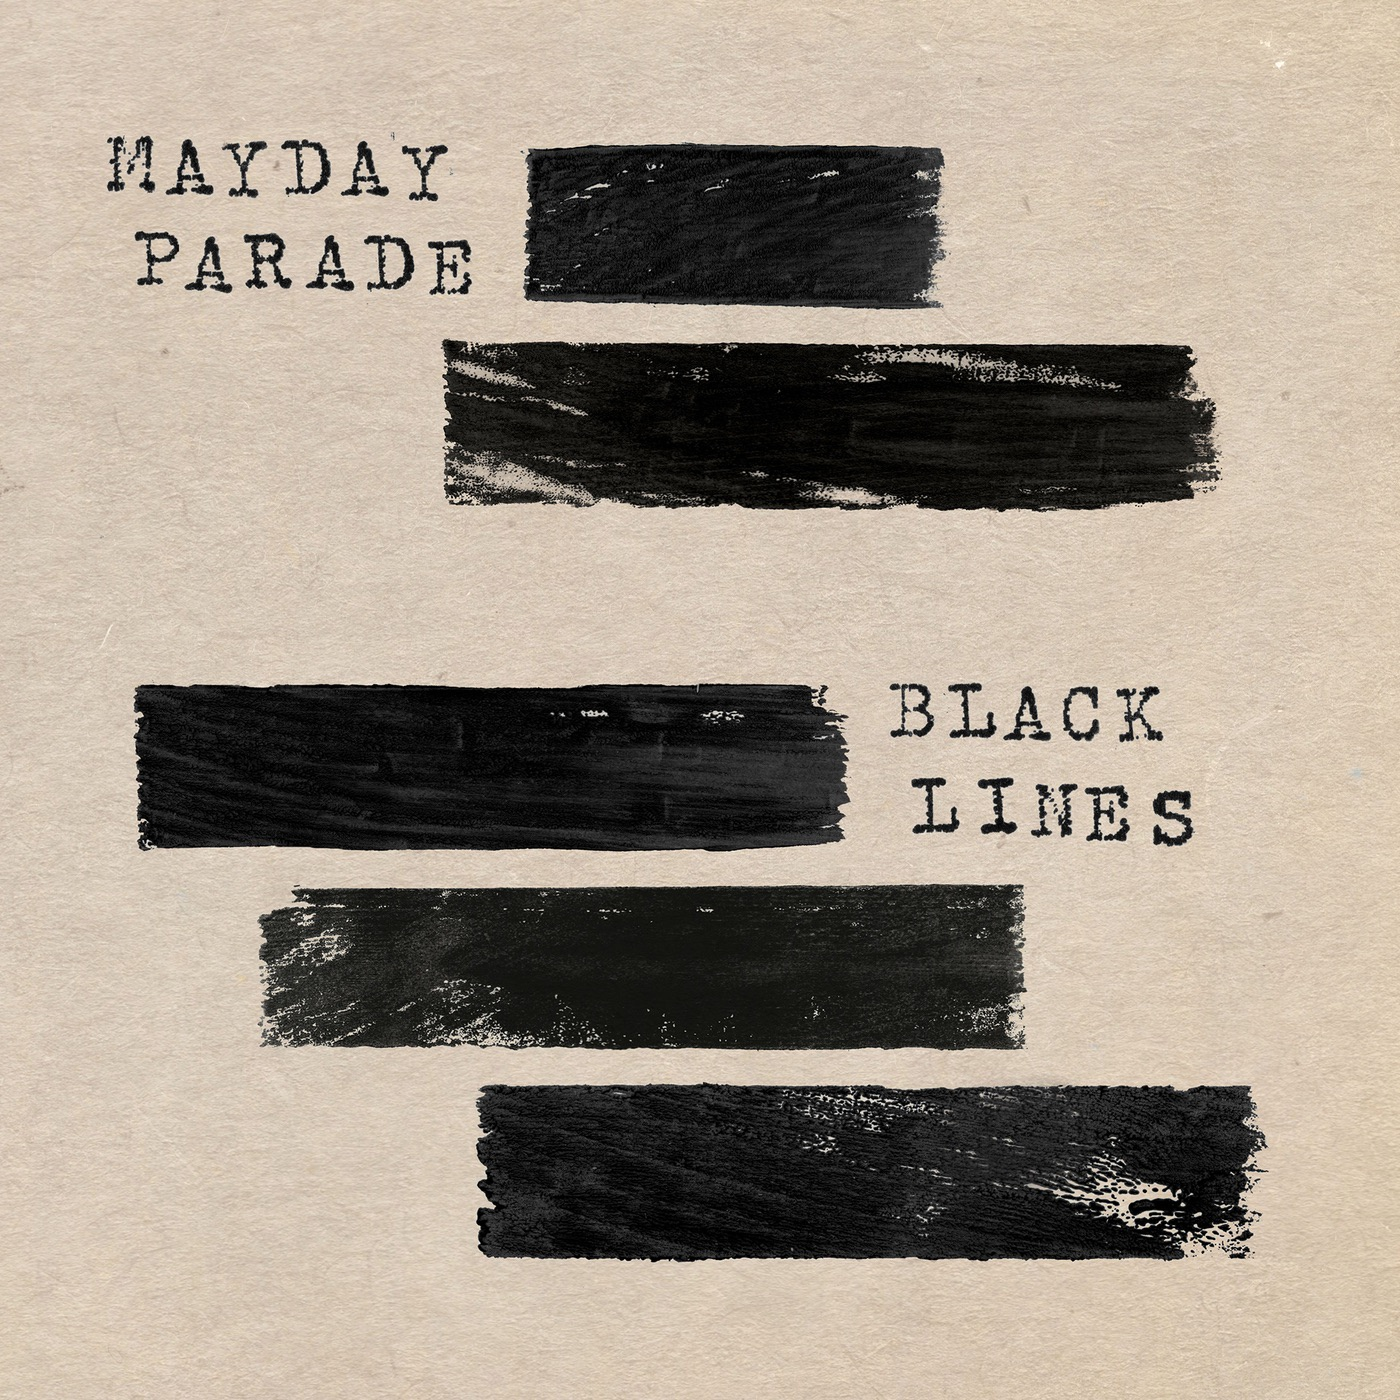 Mayday Parade album Black Lines